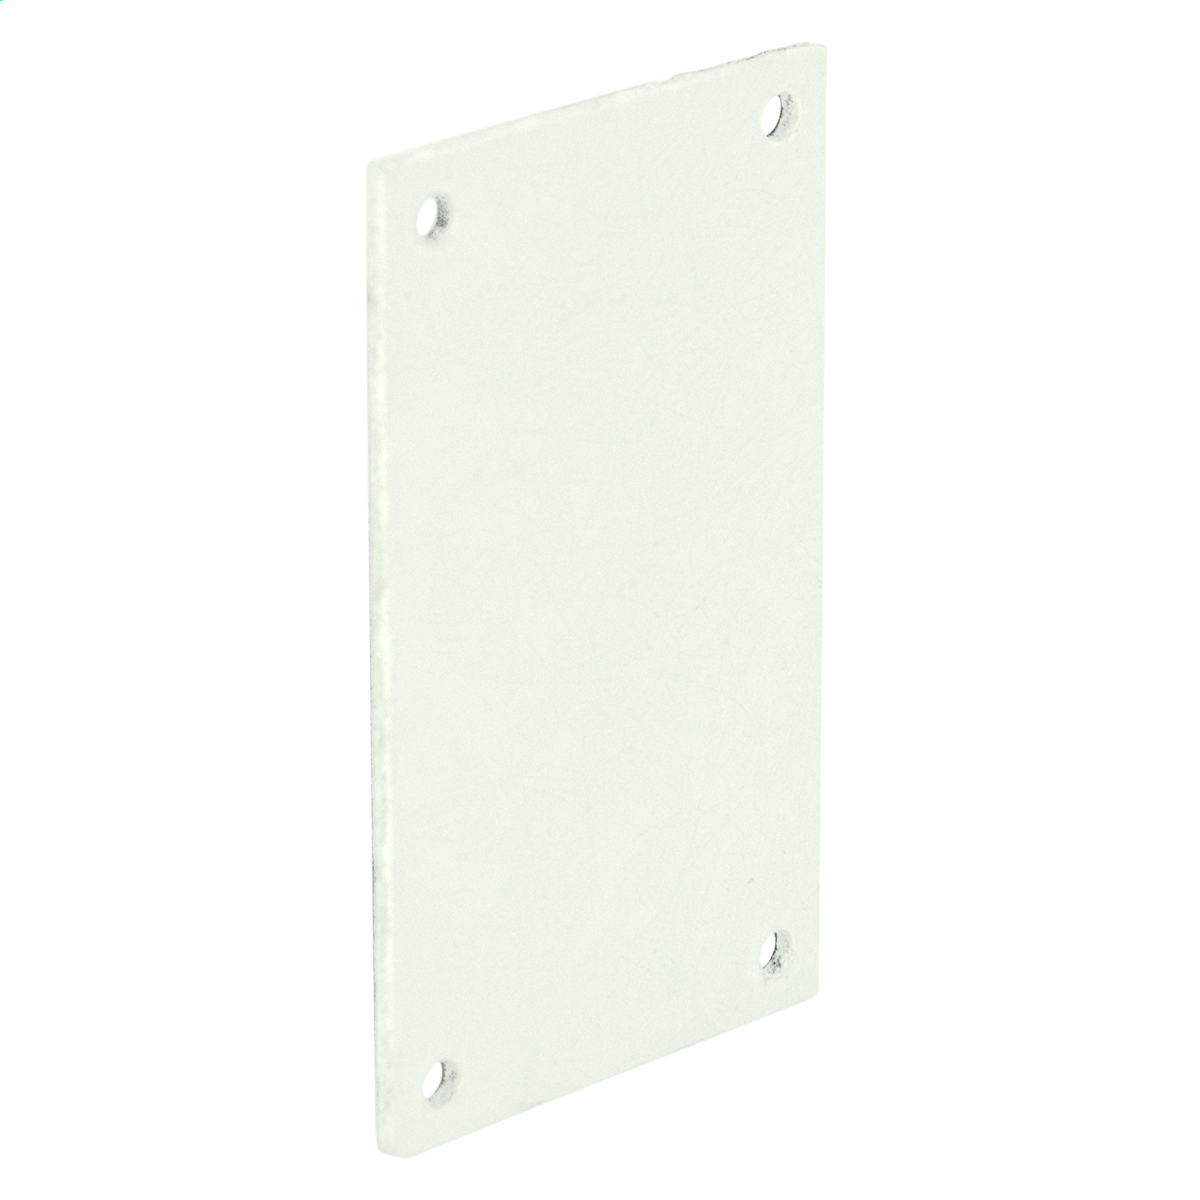 WIEGMANN P1212 PANEL FOR 12X12 BOX